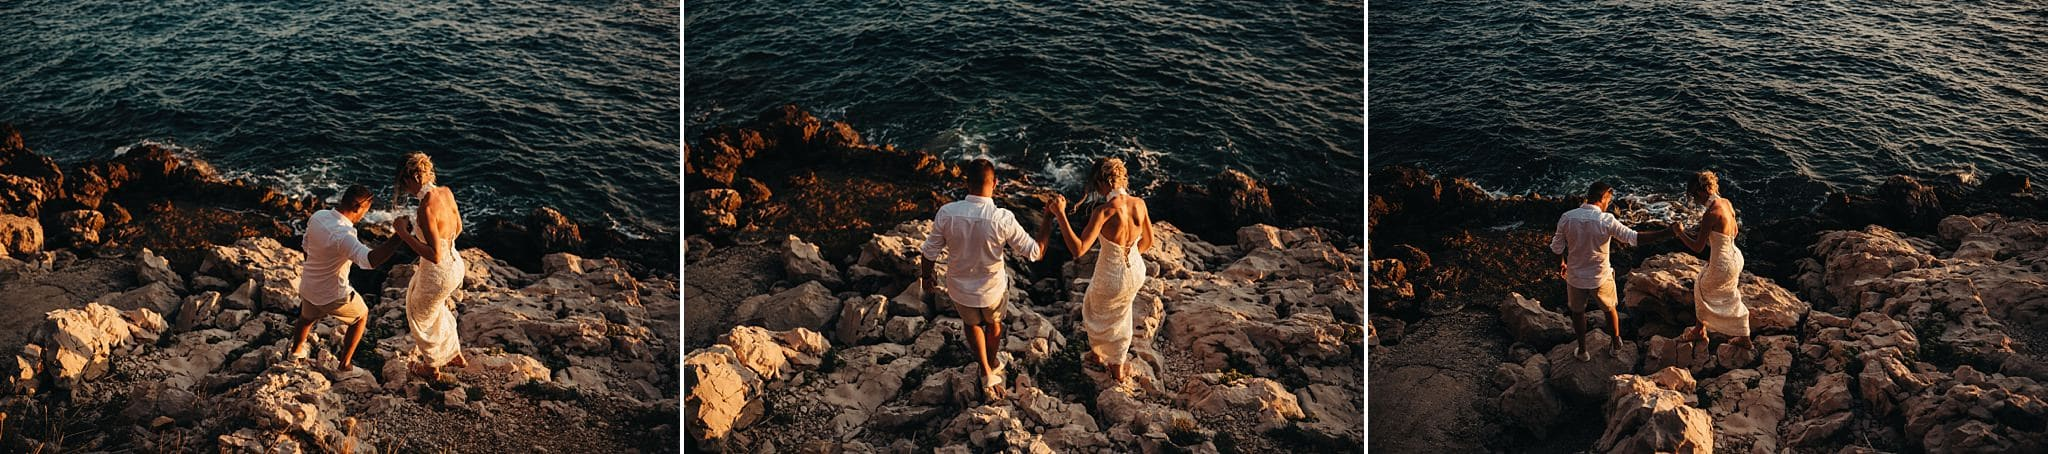 makarska wedding photographer croatia 042 - Dalmatia Wedding Photographer | Adrienn & Attila